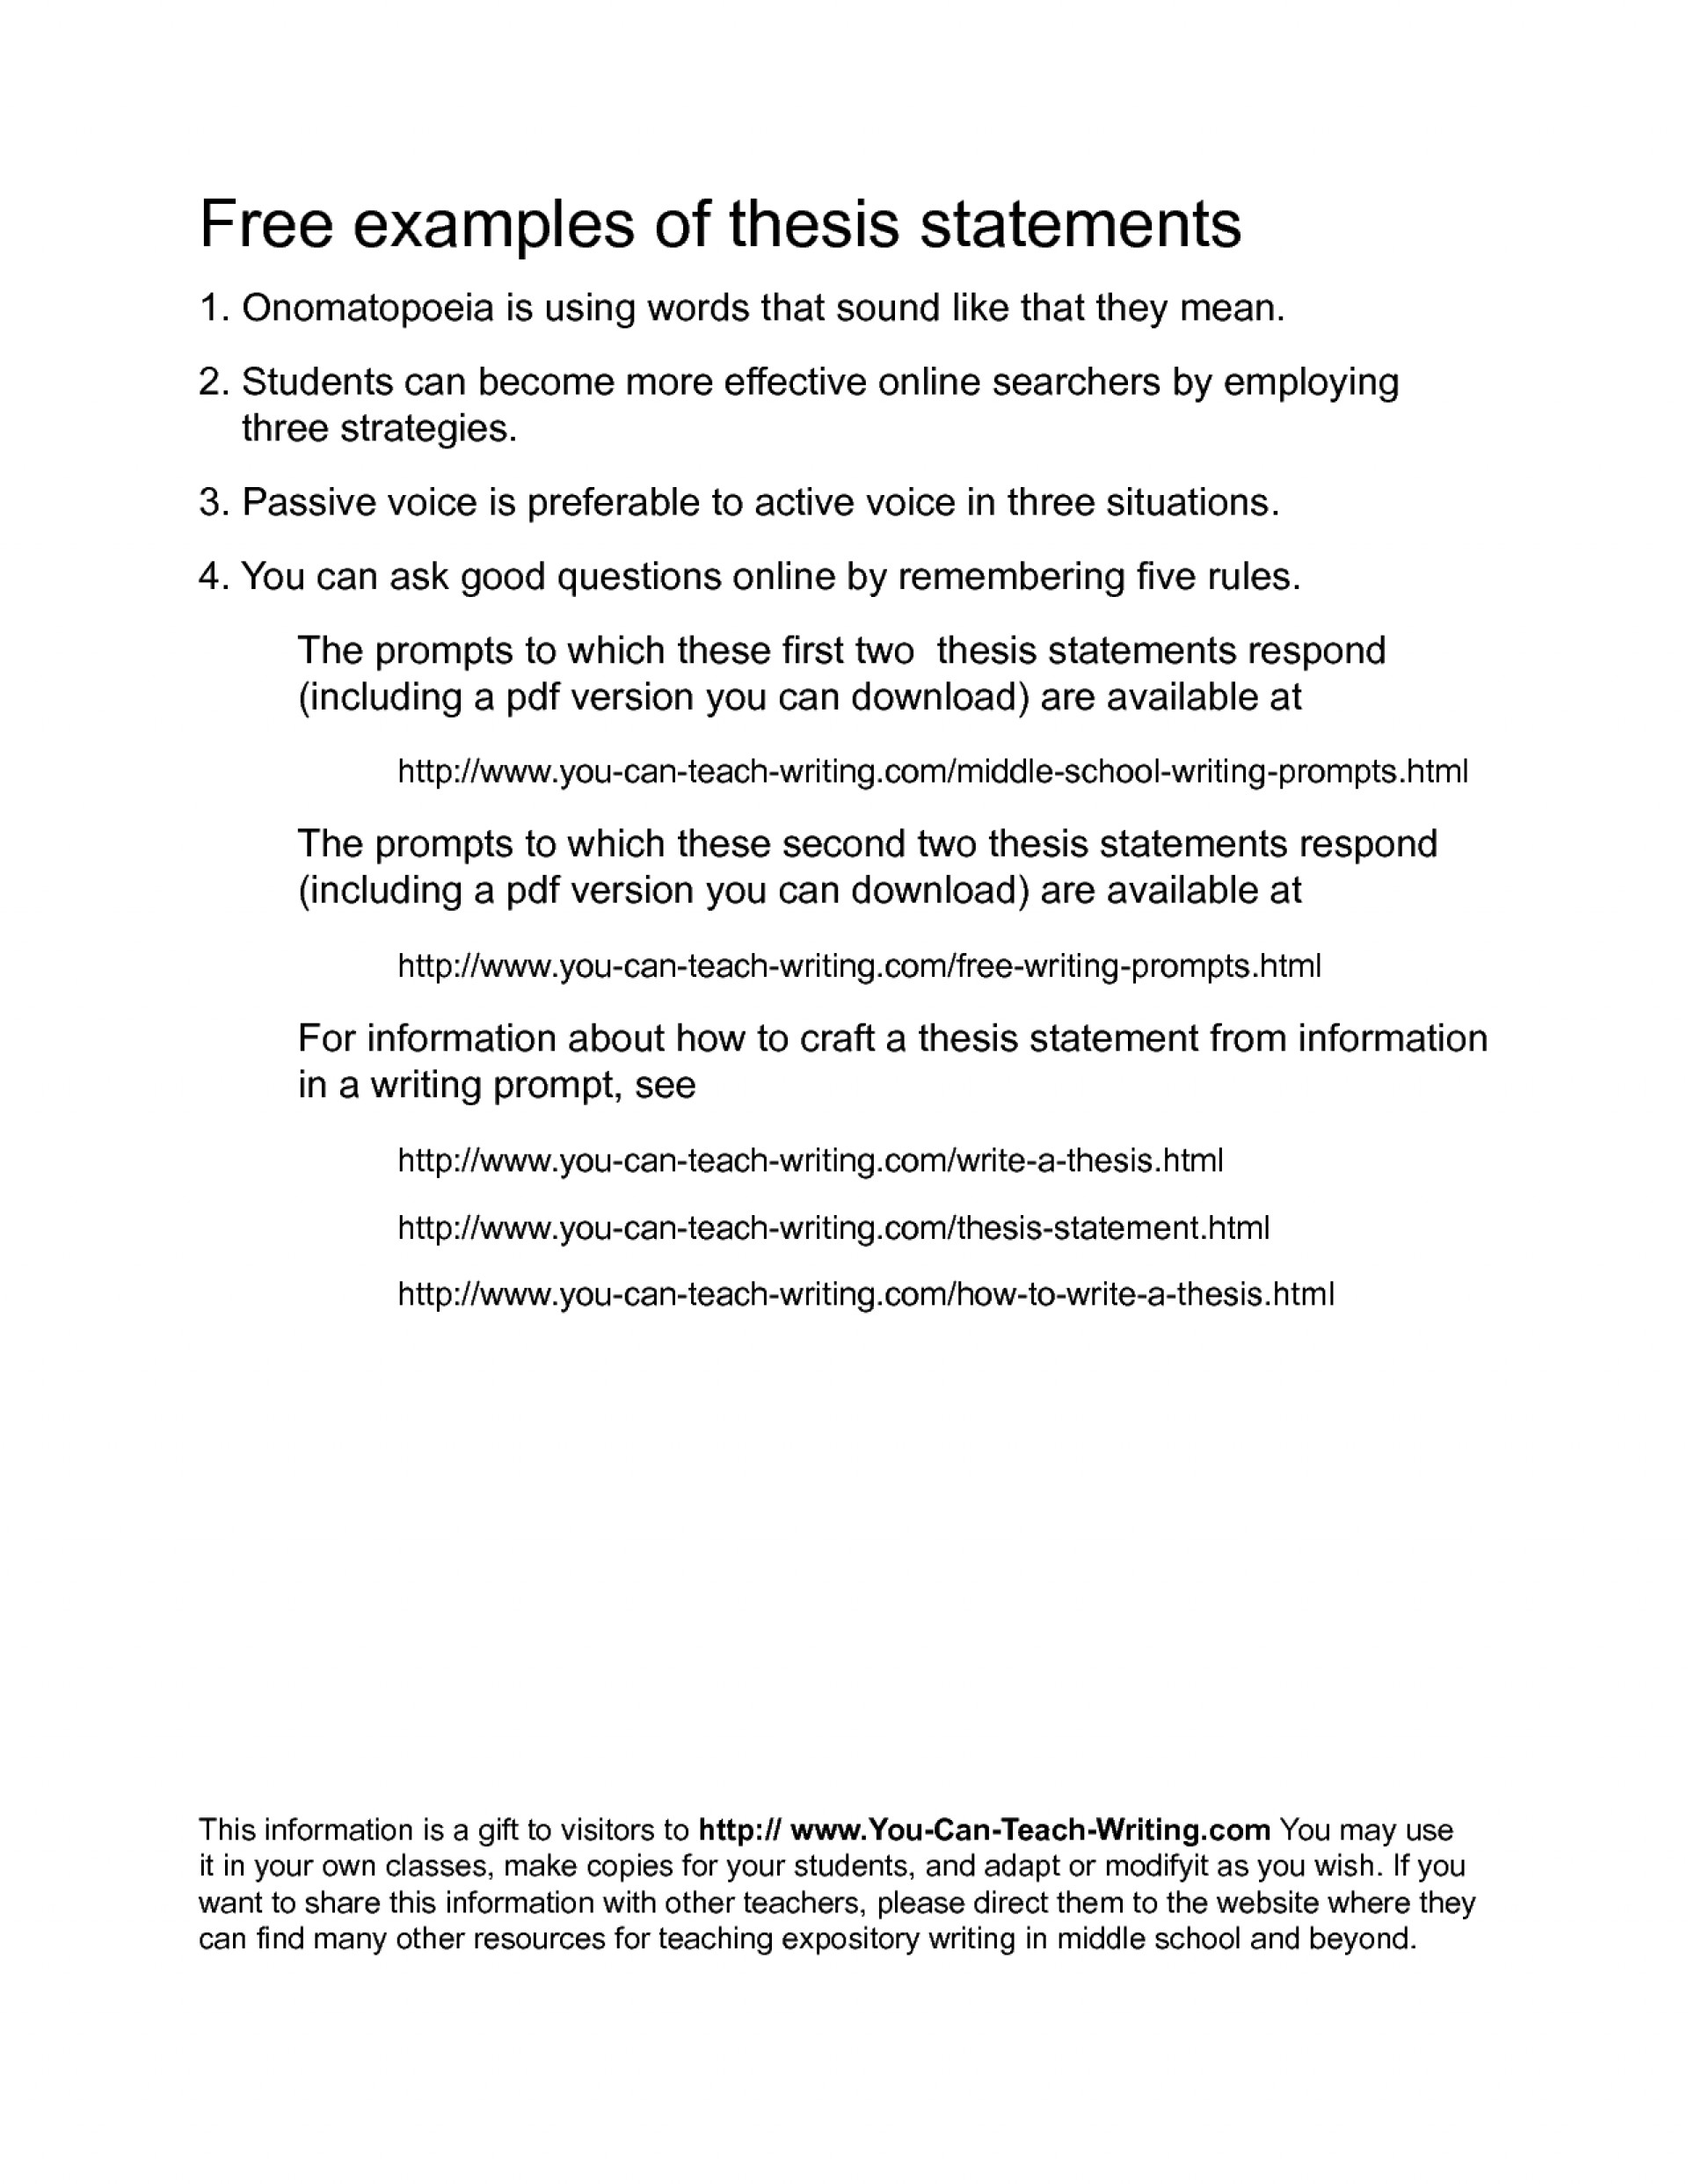 Essay Thesis Statements  Example Essay English also Good Persuasive Essay Topics For High School  Sample Argumentative Essay Thesis Statement Examples Of  Example Of An English Essay